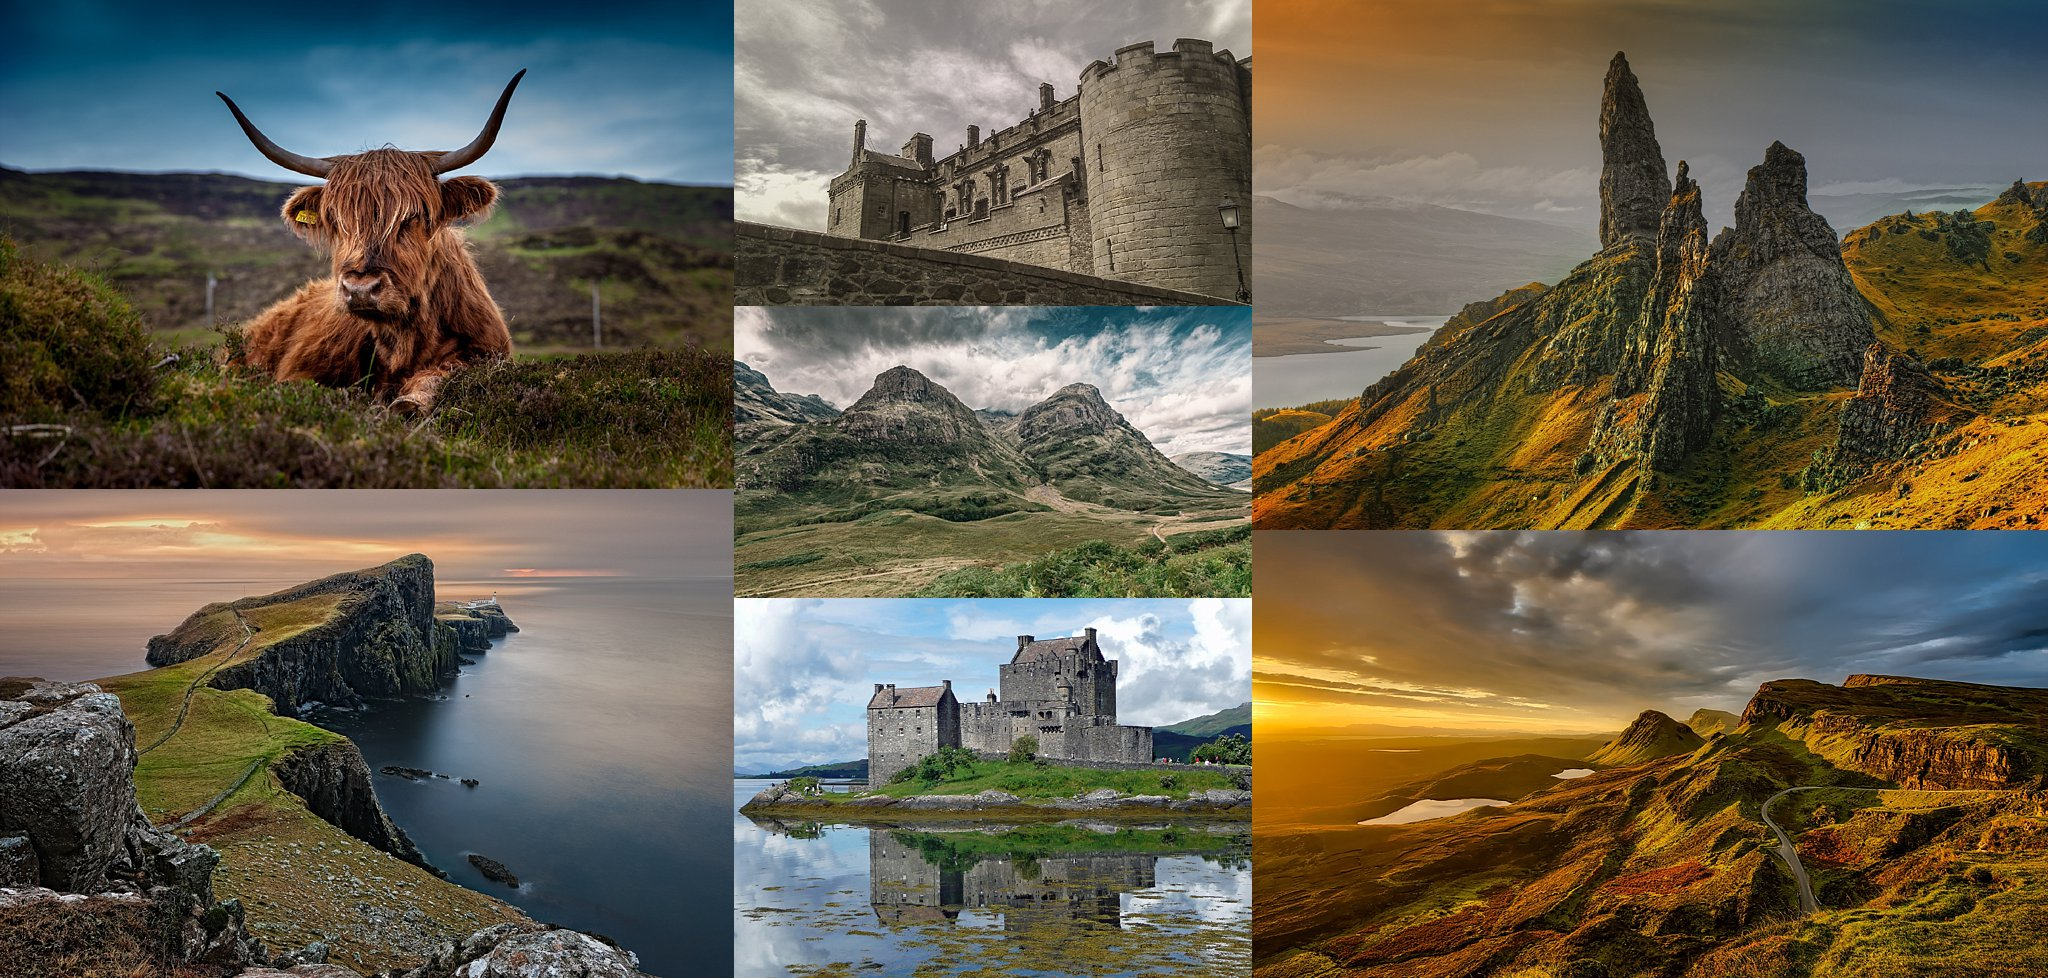 Images of Scotland (please note, none of them are my own, but taken from Pixabay with permission)